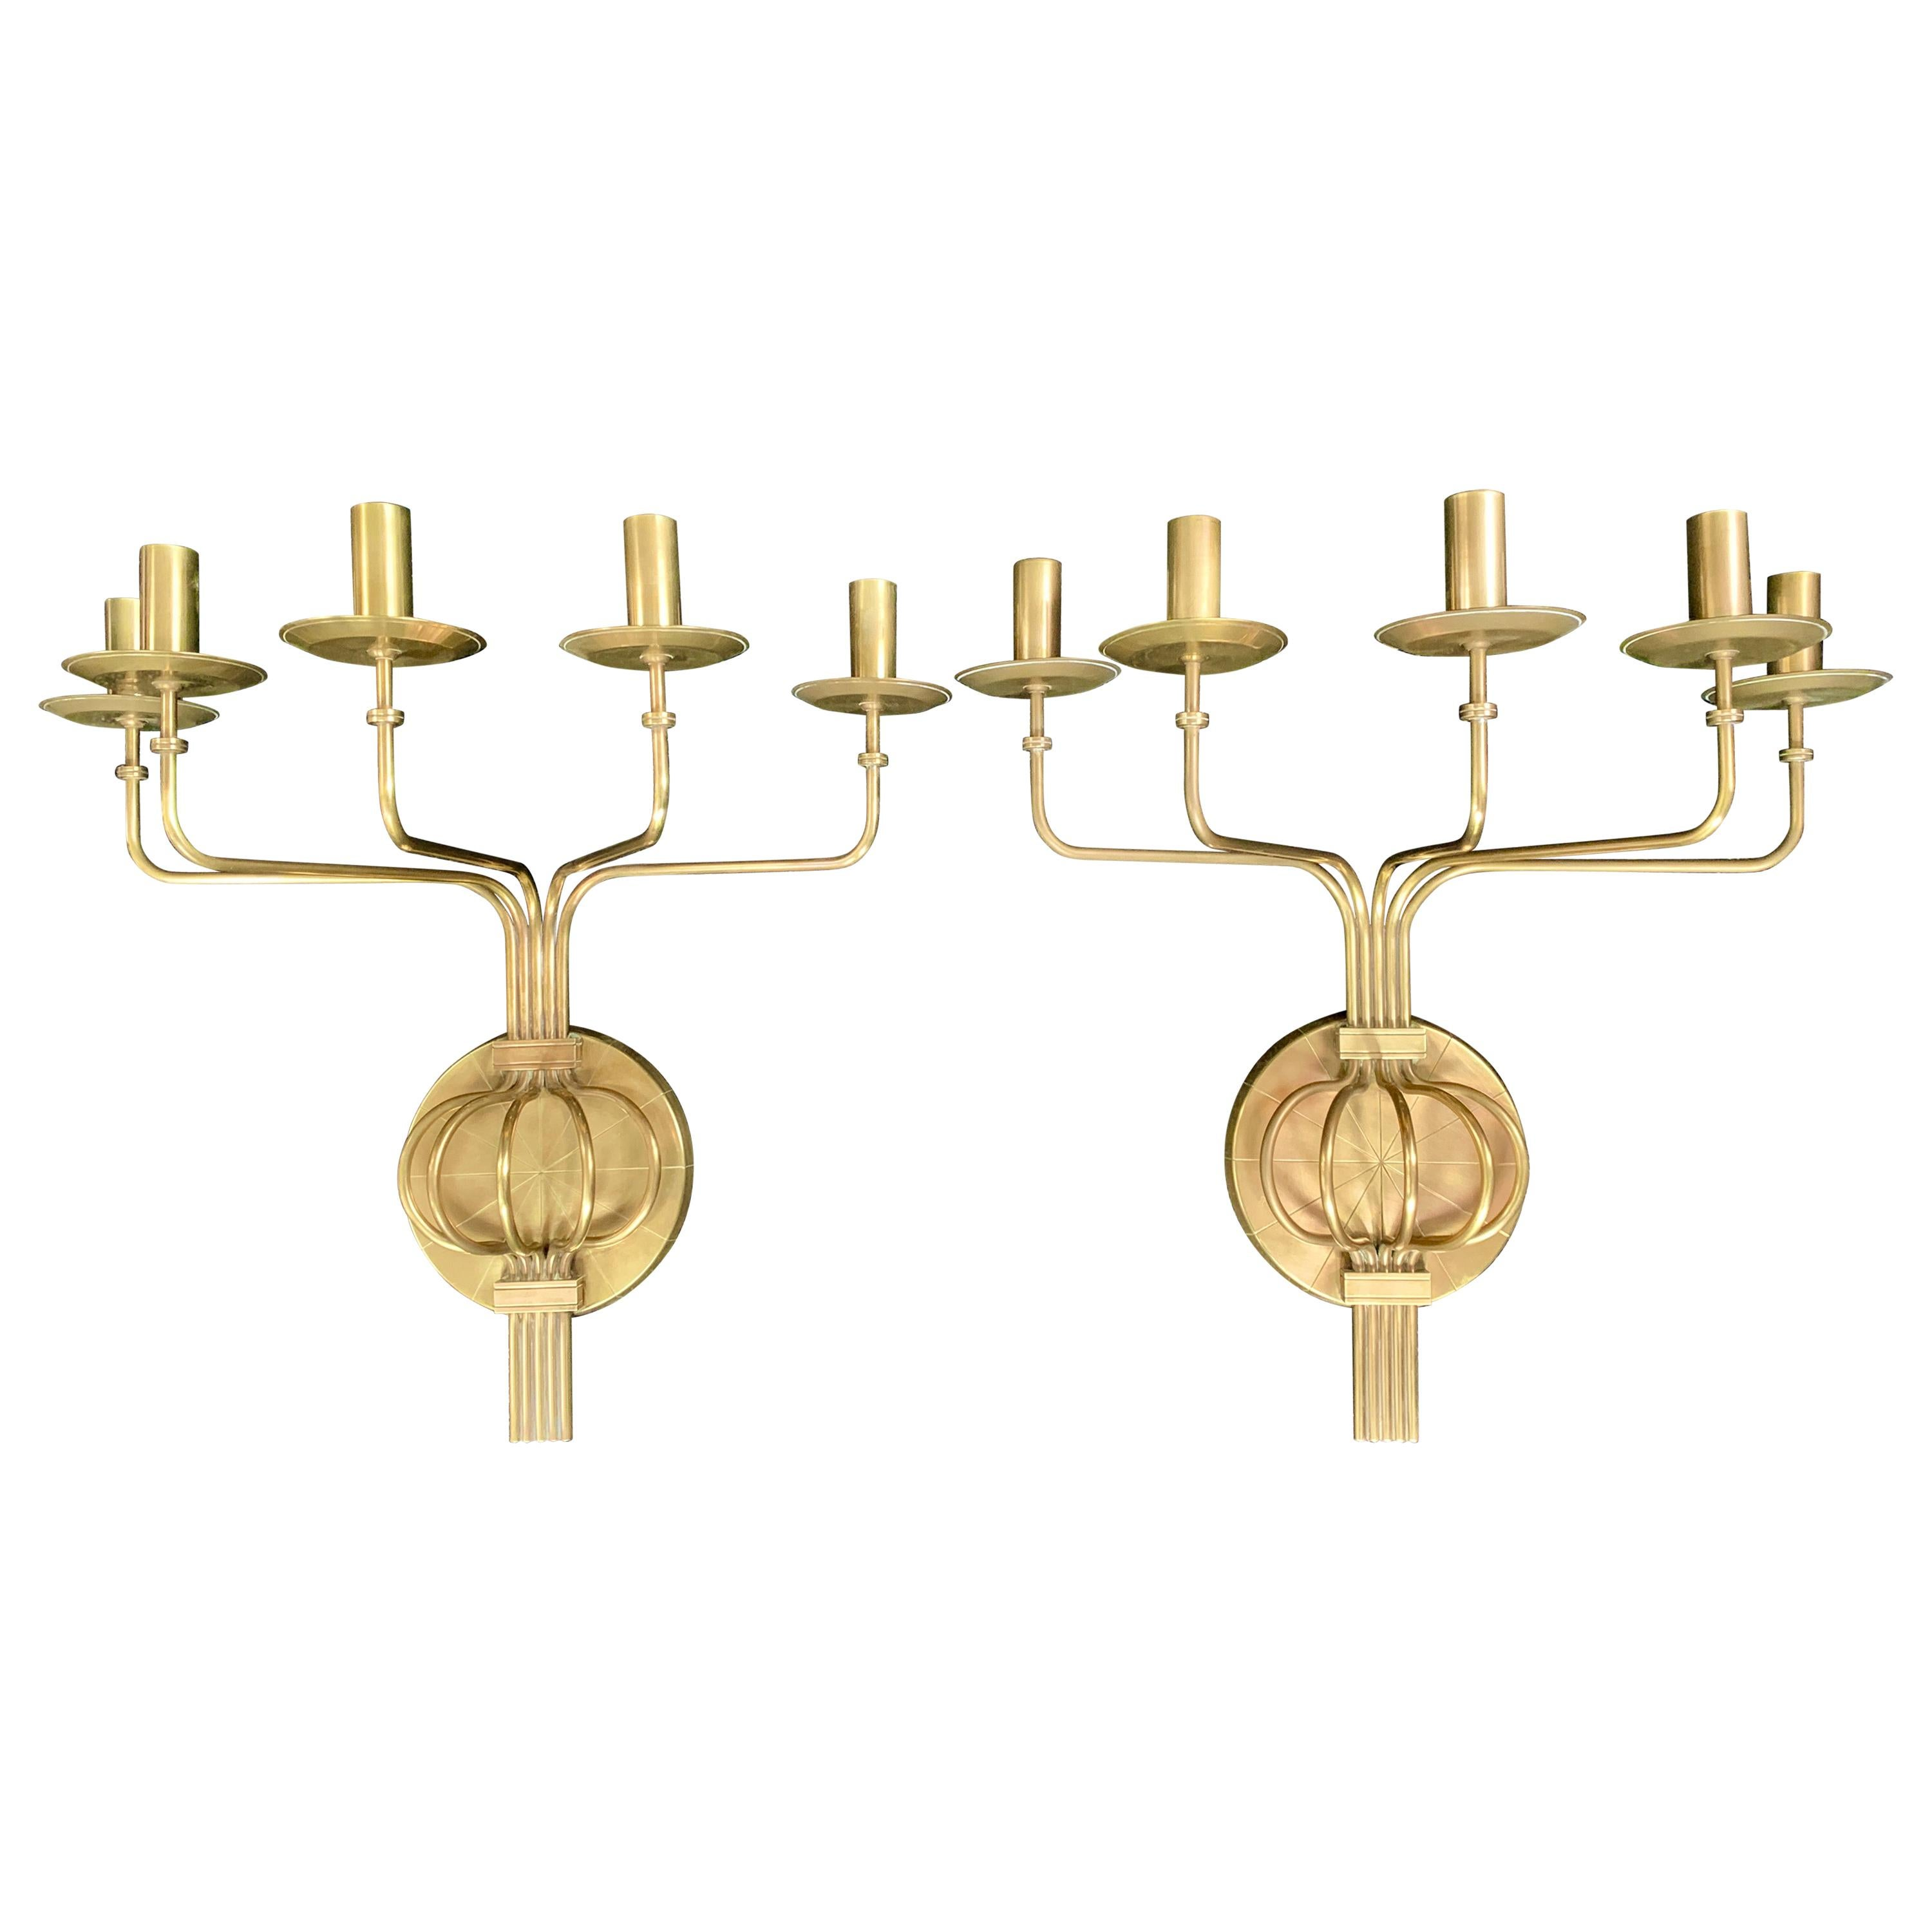 Pair of Brass Five Arm Hollywood Regency Wall Sconces by Tommi Parzinger